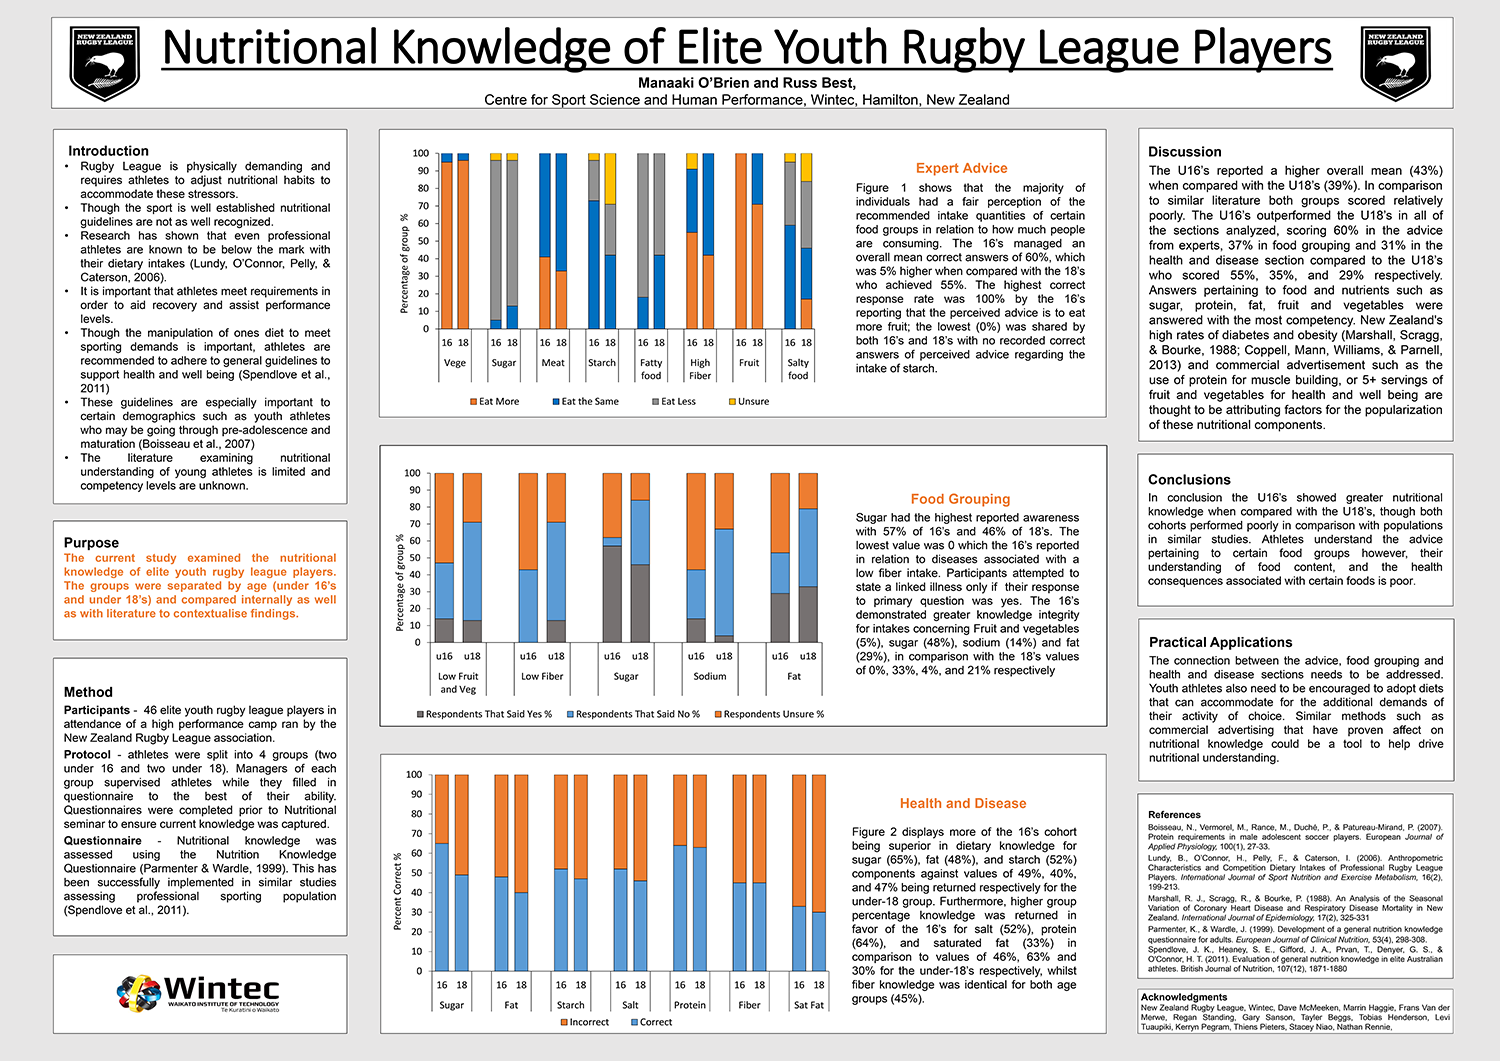 Nutritional Knowledge of Elite Youth Rugby League Players